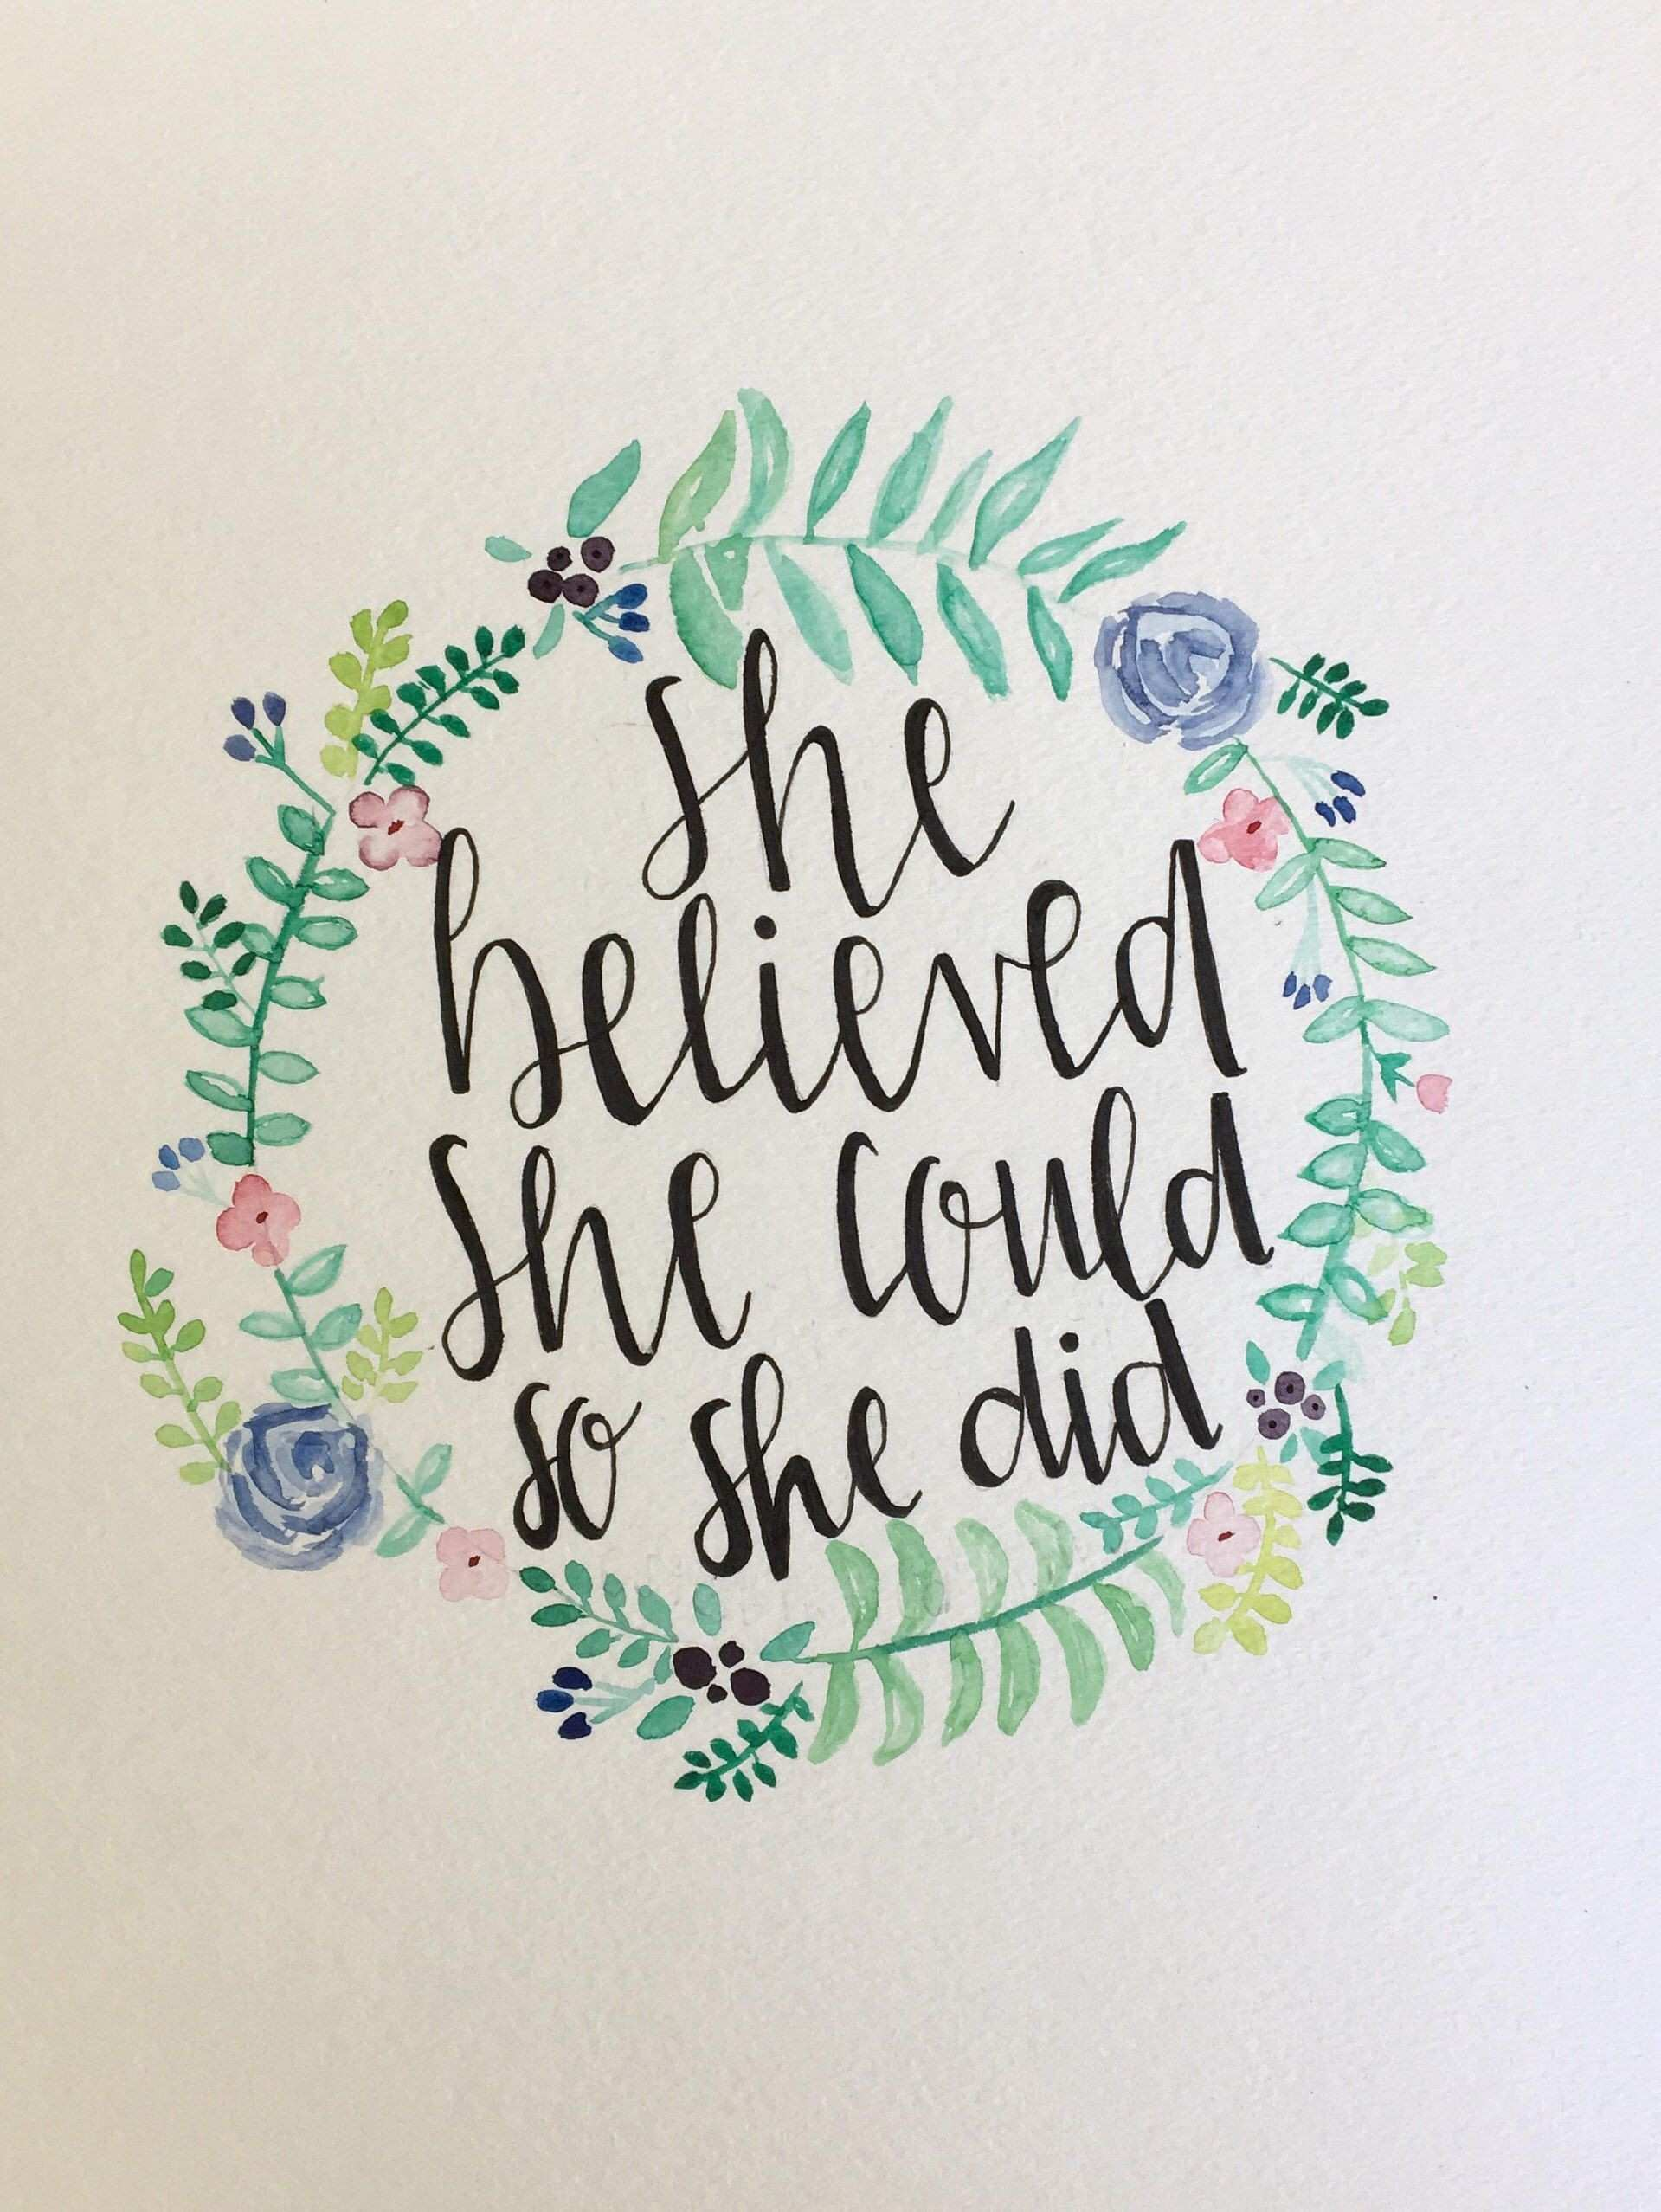 She believed she could so she did watercolor hand painted Watercolor